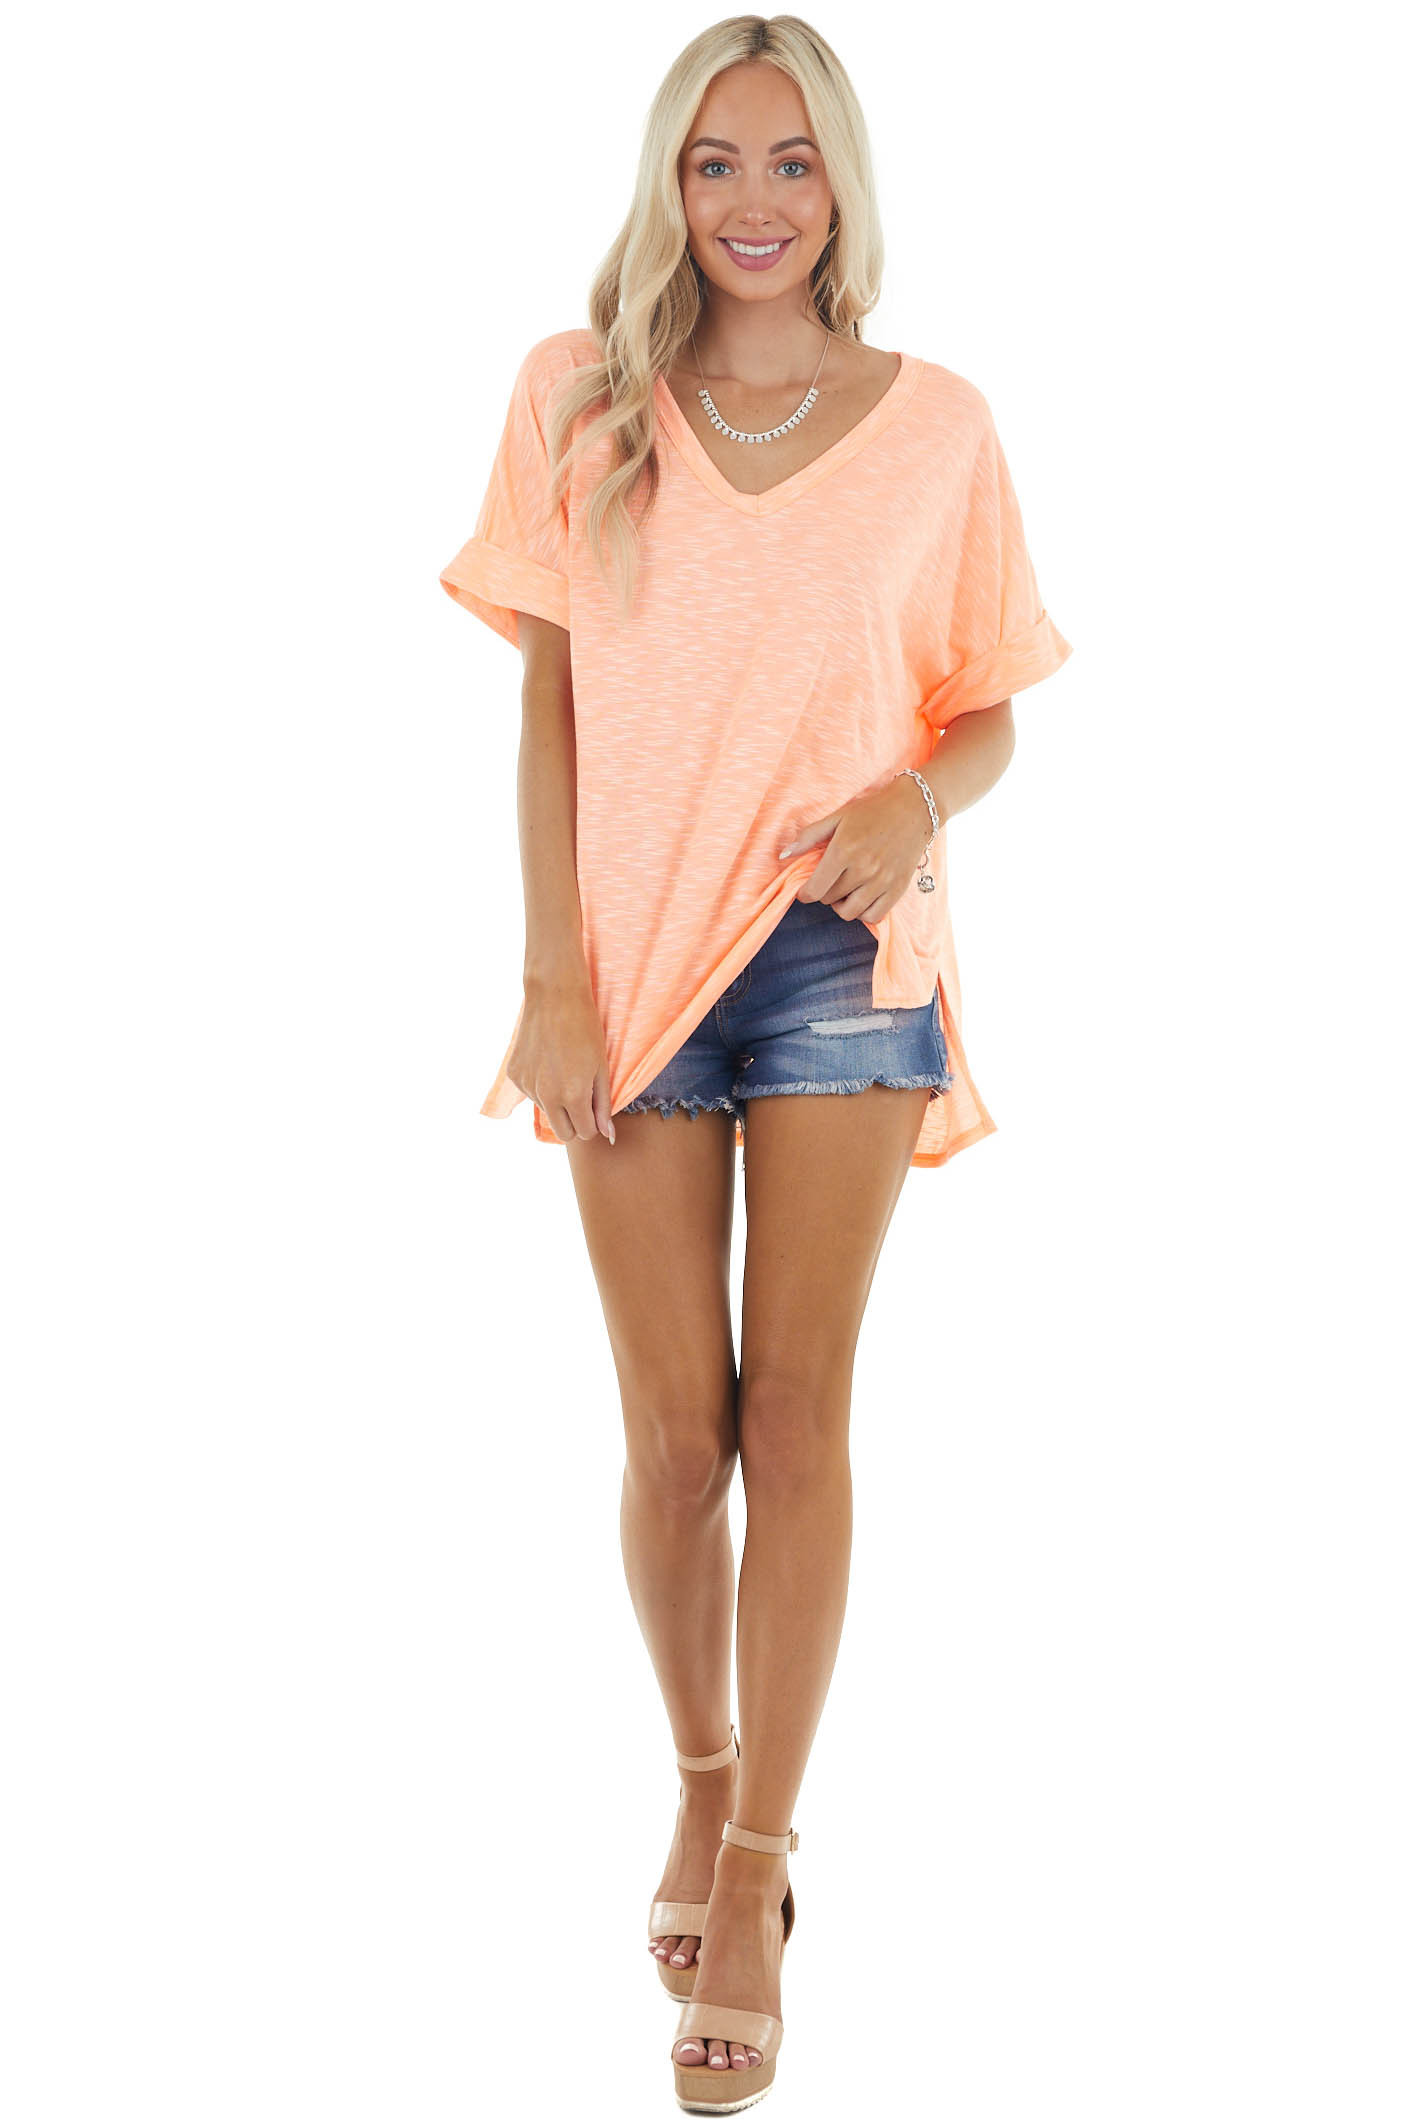 Heathered Neon Salmon Knit Top with Short Rolled Sleeves